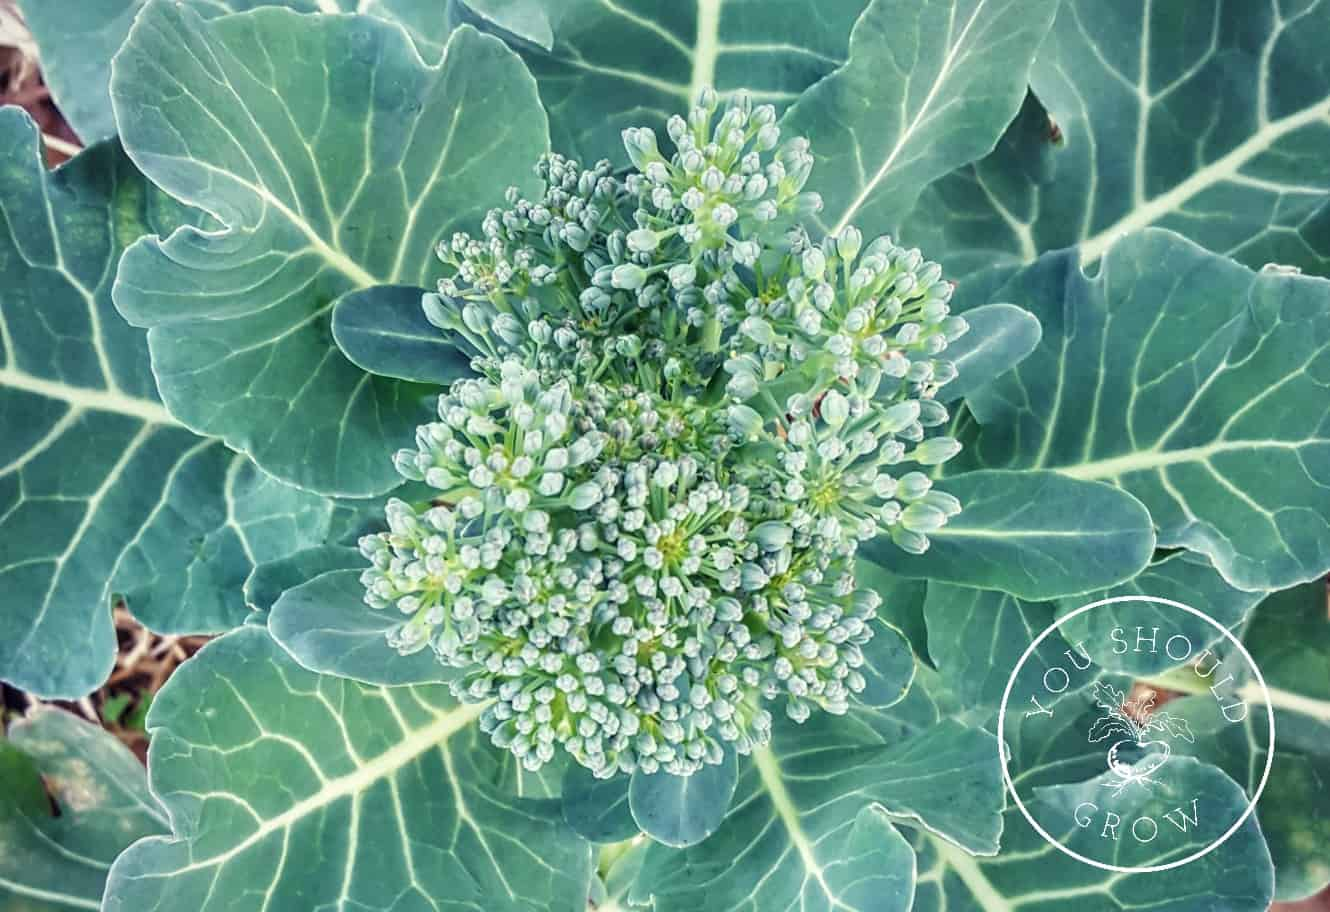 Growing broccoli tricks to grow big broccoli heads you should grow three tricks to growing broccoli at youshouldgrow your source of encouragement and advice mightylinksfo